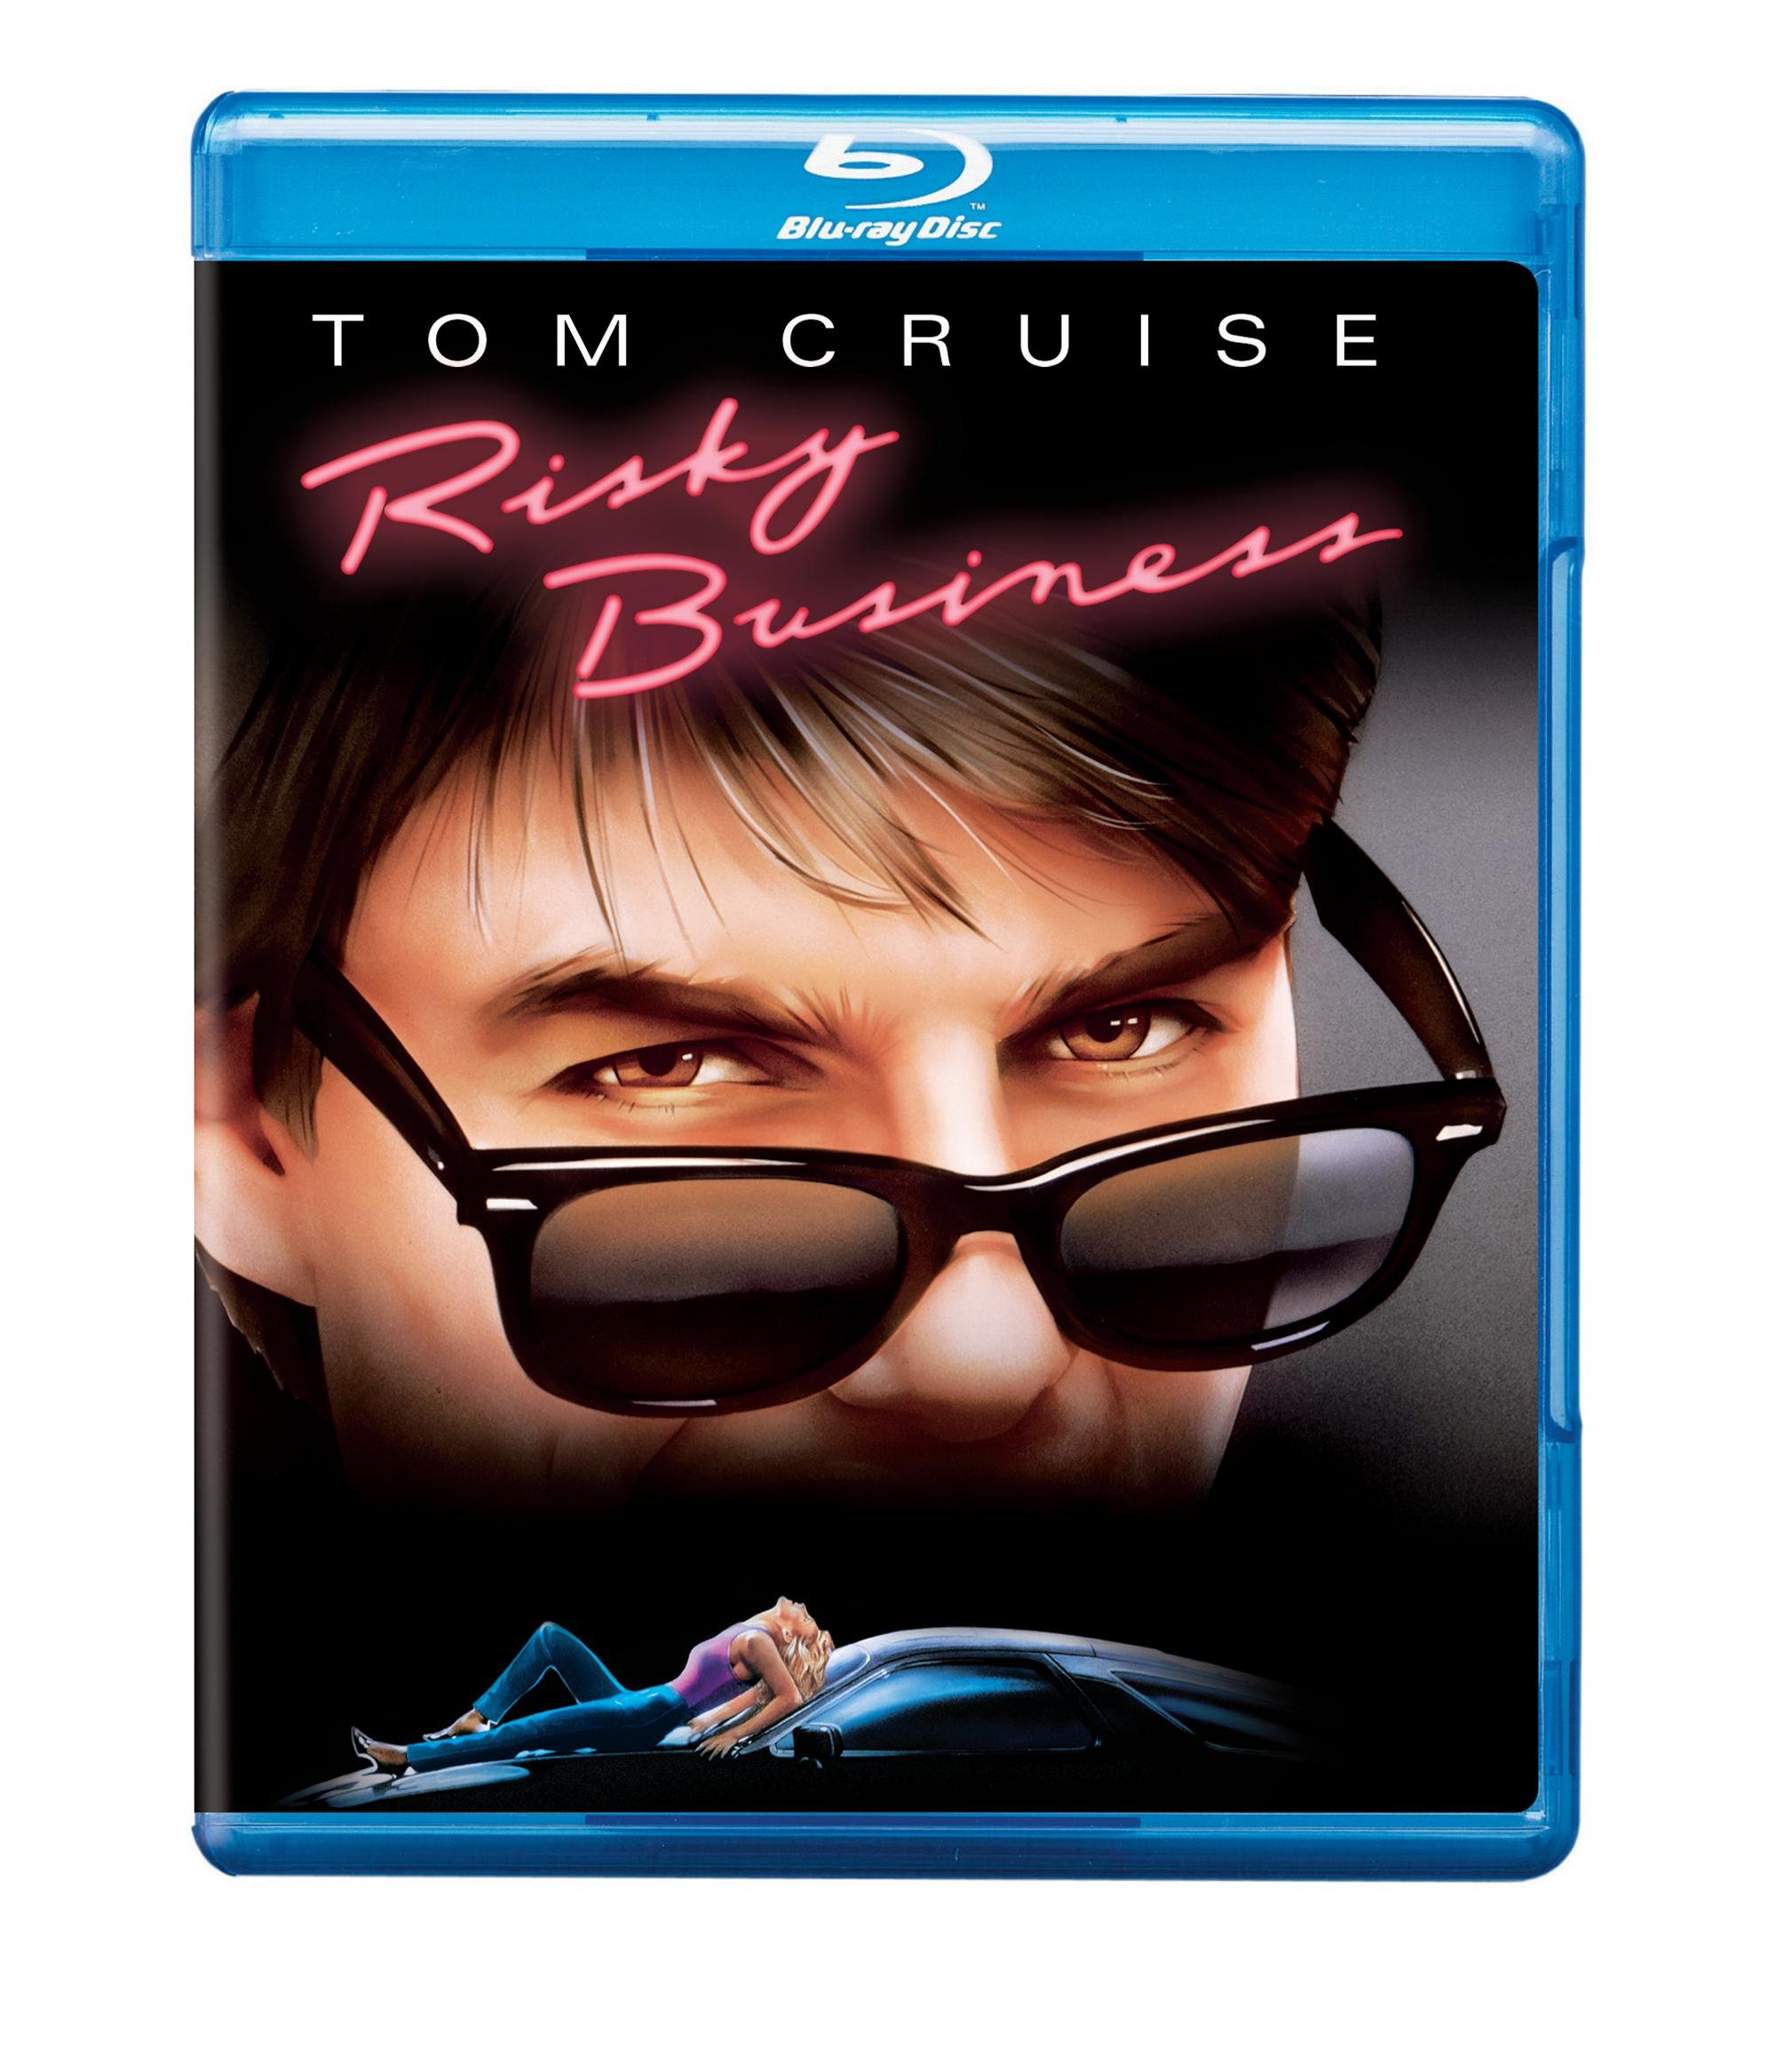 Blu-ray : Risky Business (1983) (Anniversary Edition, Deluxe Edition, Restored, Remastered, Dolby)